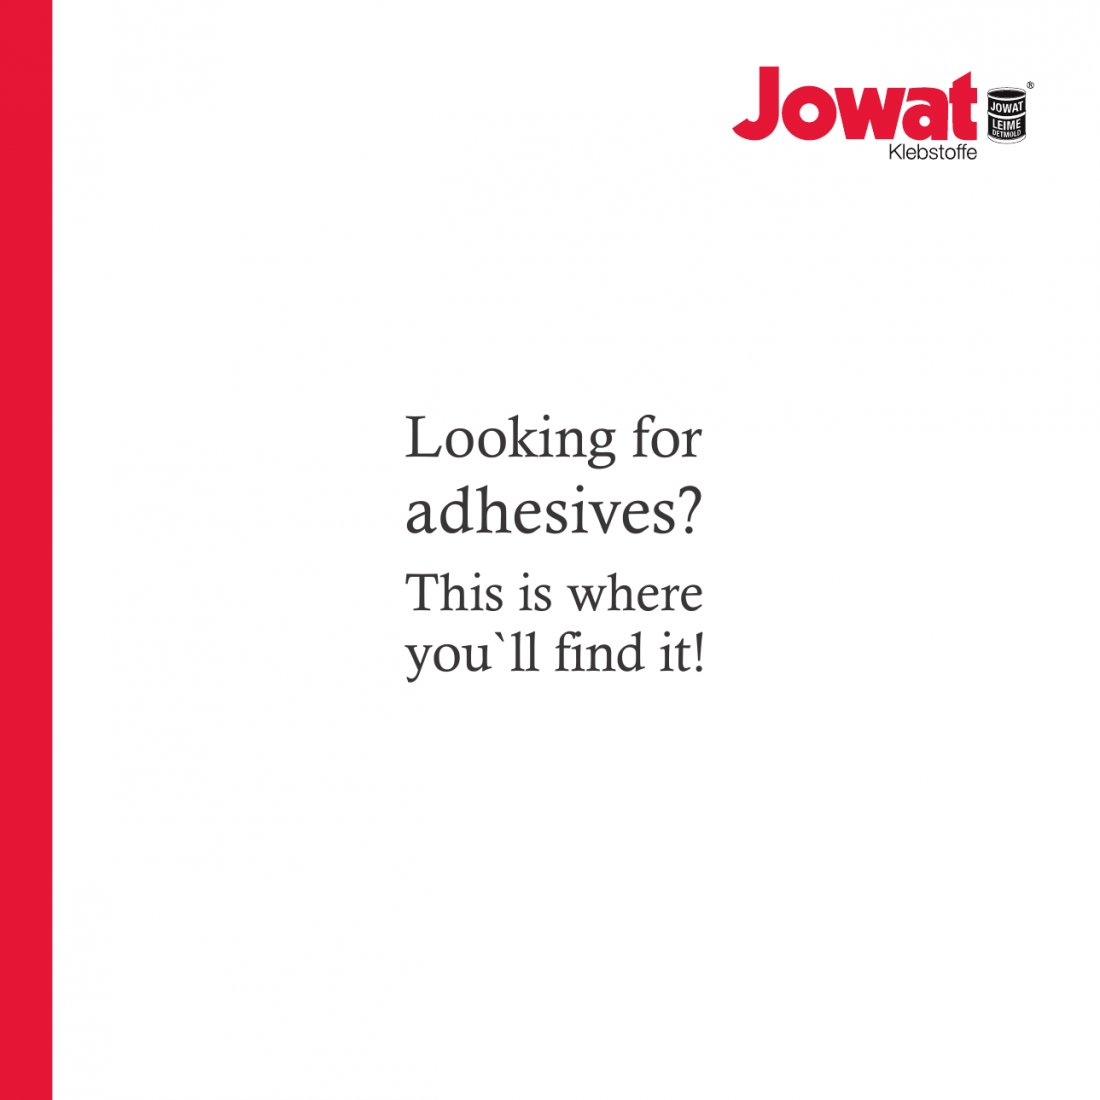 Looking for adhesives?